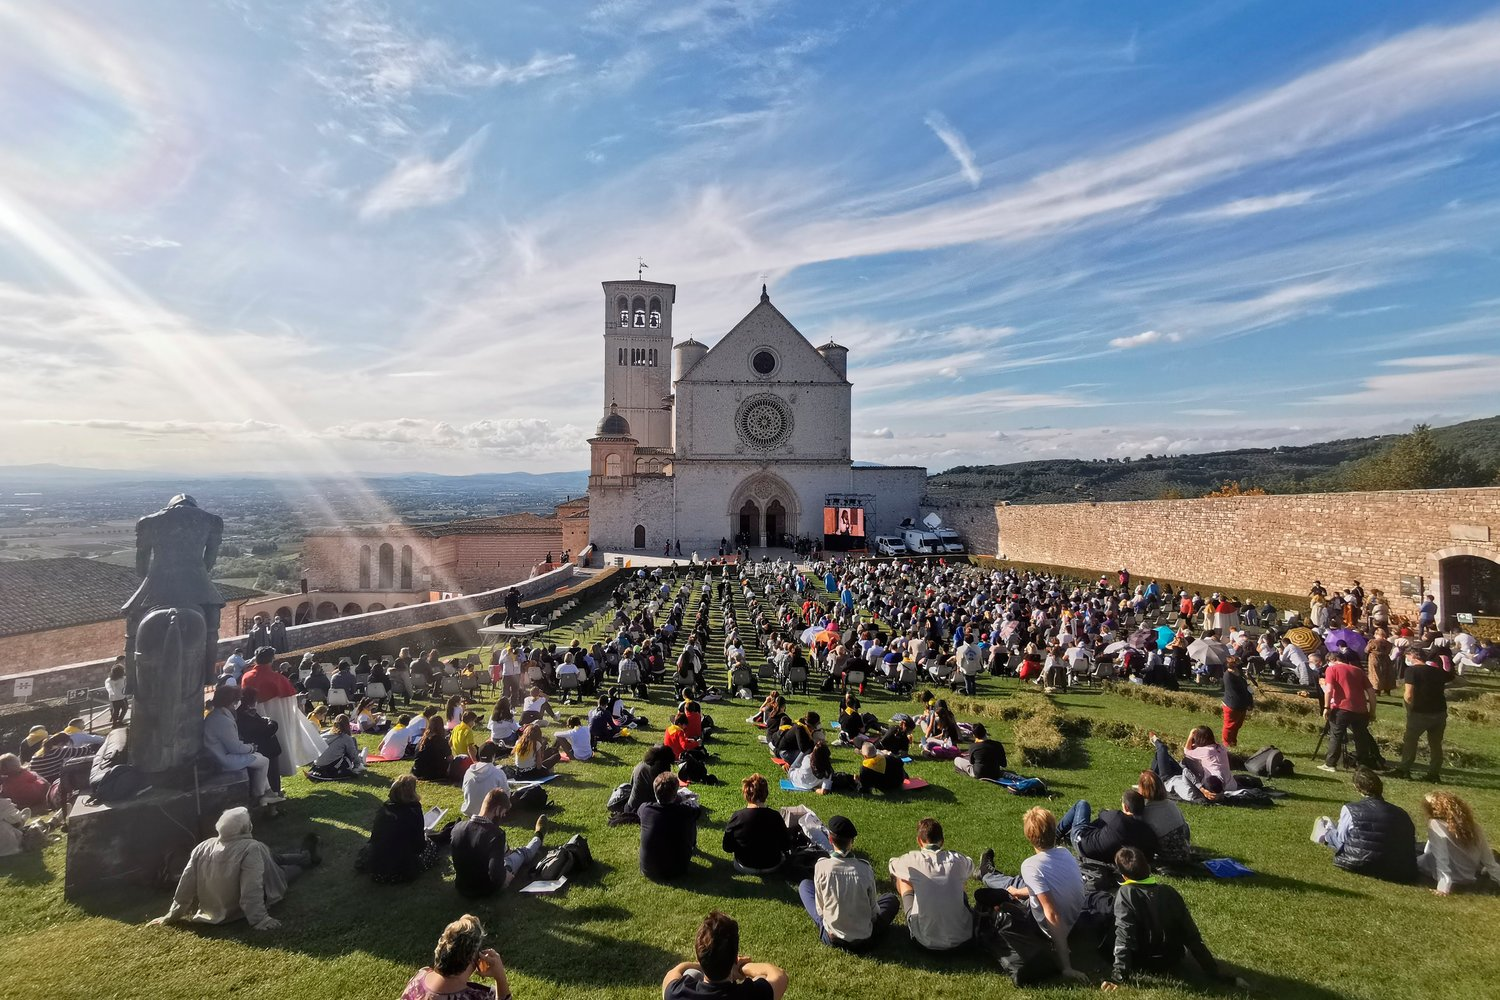 People sit outside the Basilica of St. Francis in Assisi as they attend the beatification Mass of Carlo Acutis in Assisi, Italy, Oct. 10. The Mass was held inside the basilica but measures to prevent the spread of Covid-19 meant that most of the attendees sat outside.